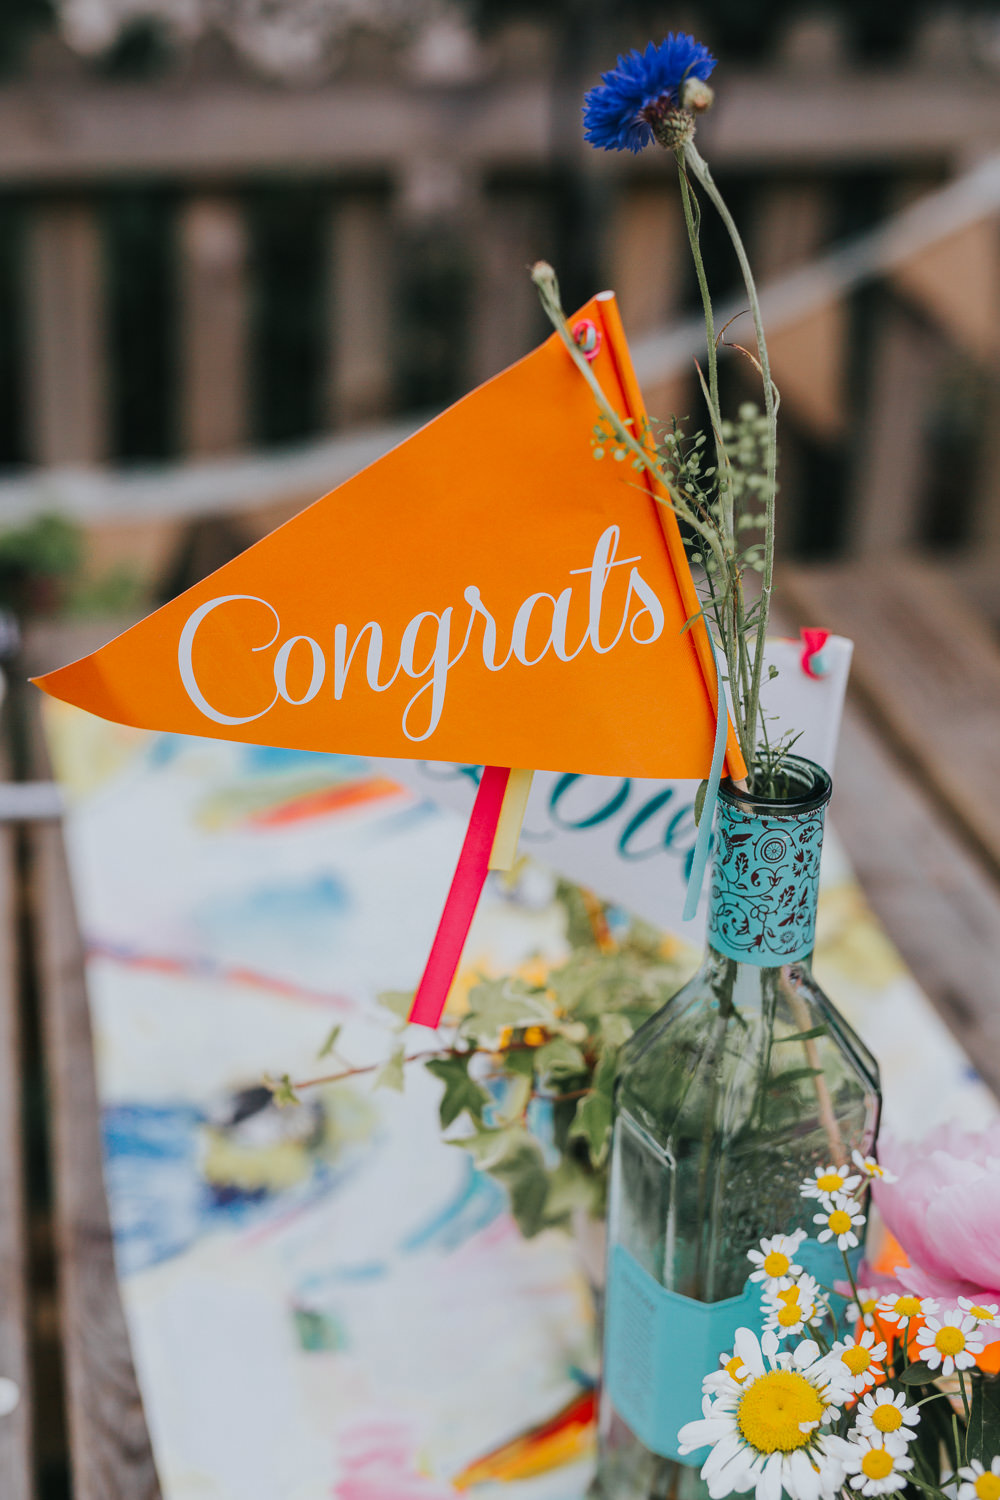 Bottle Jar Flowers Congrats Banner Flag Table Decor Colourful Bright Summer Pub Wedding Charlotte Razzell Photography